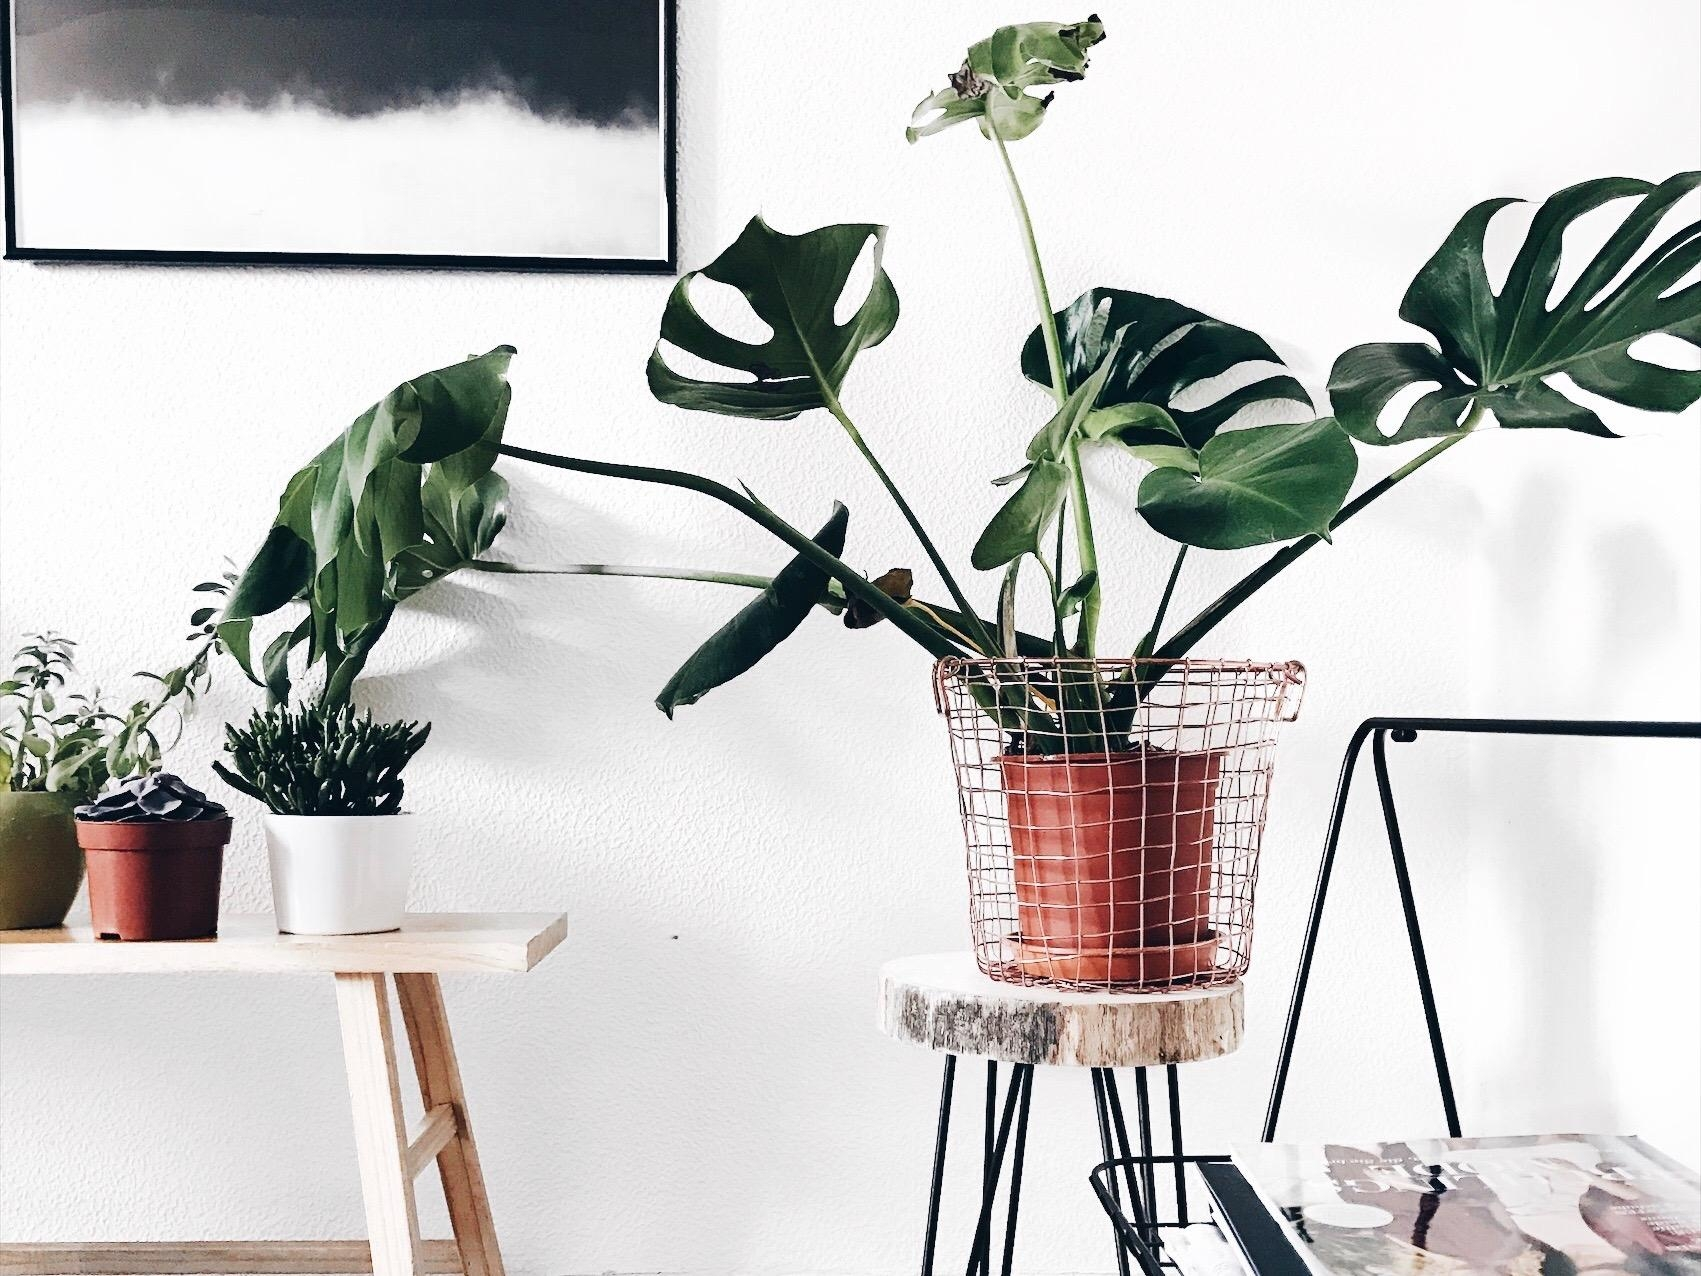 #plants #monstera #wohnzimmer #details #living #cozy #home #interior #couchliebt